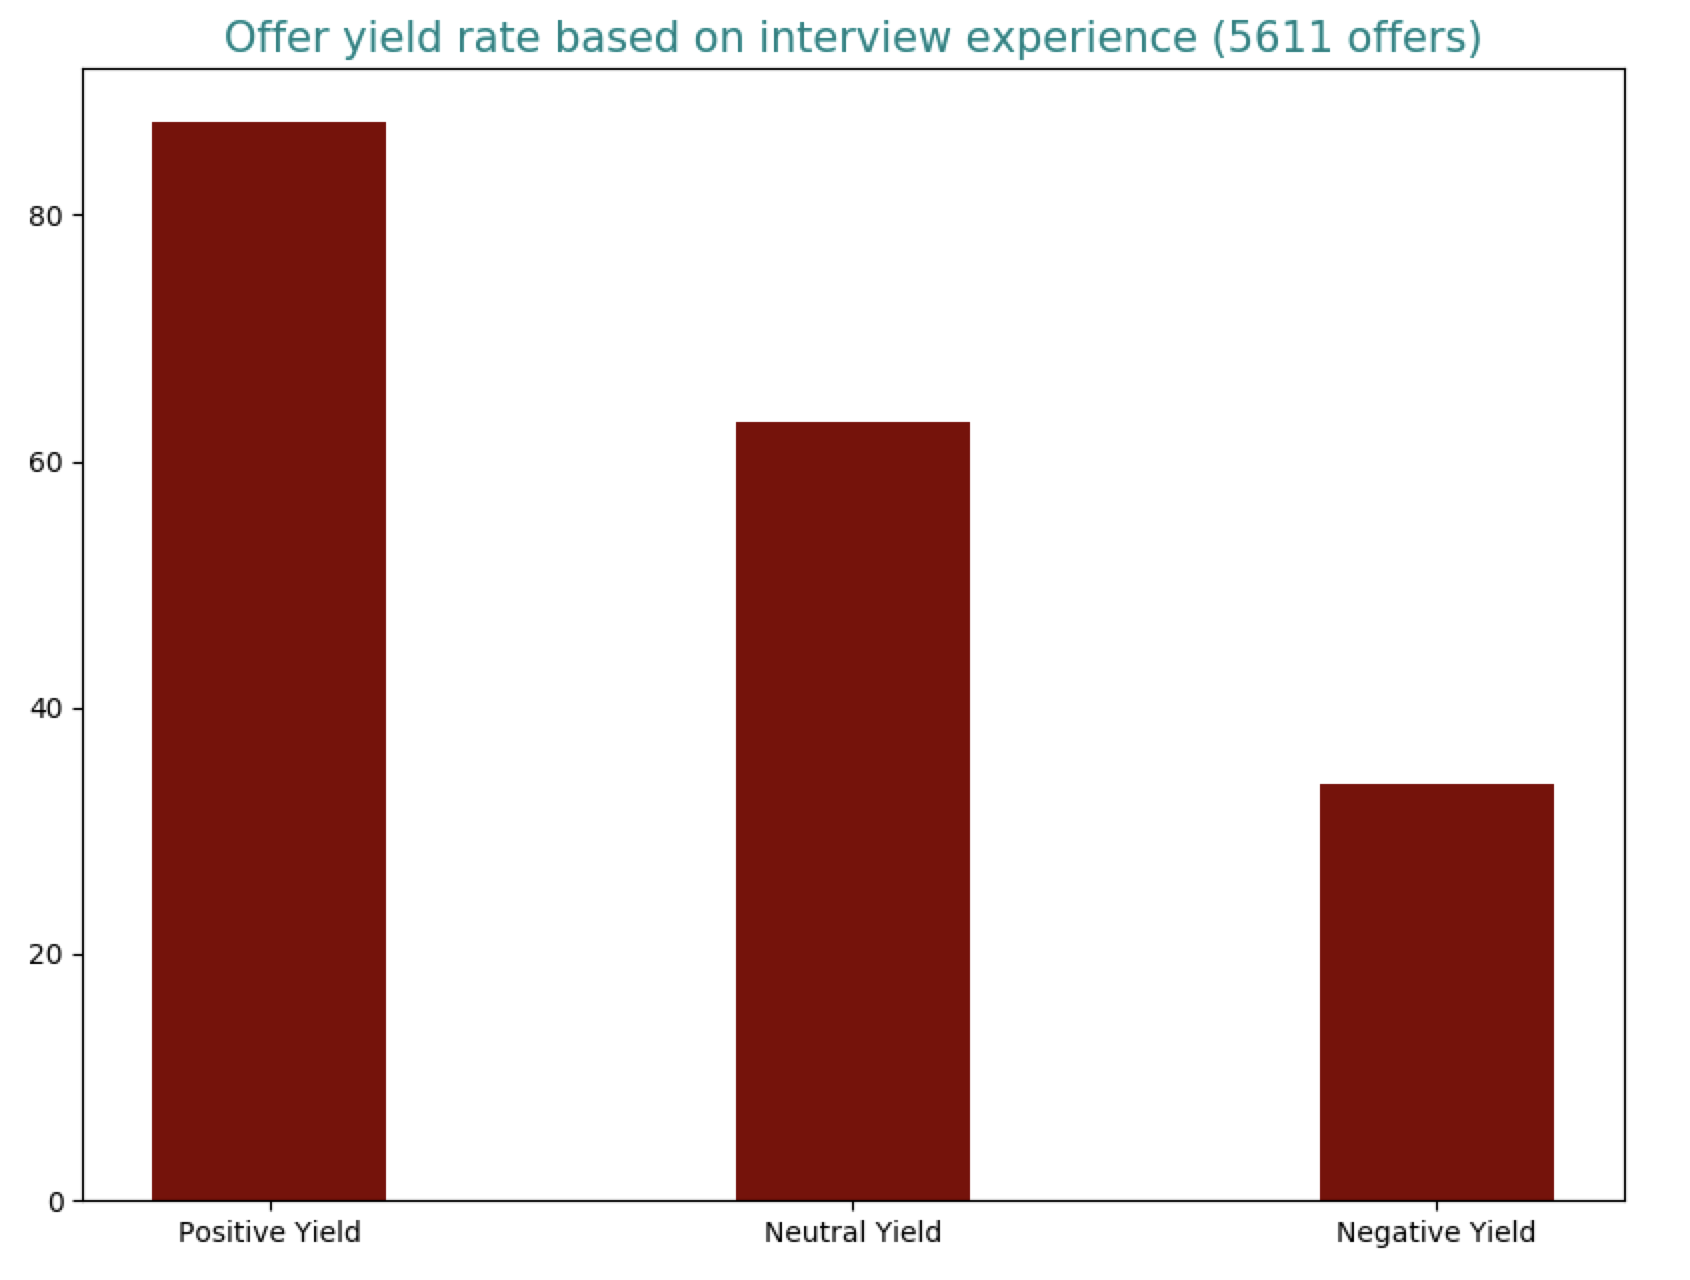 Offer yield rate based on interview experience